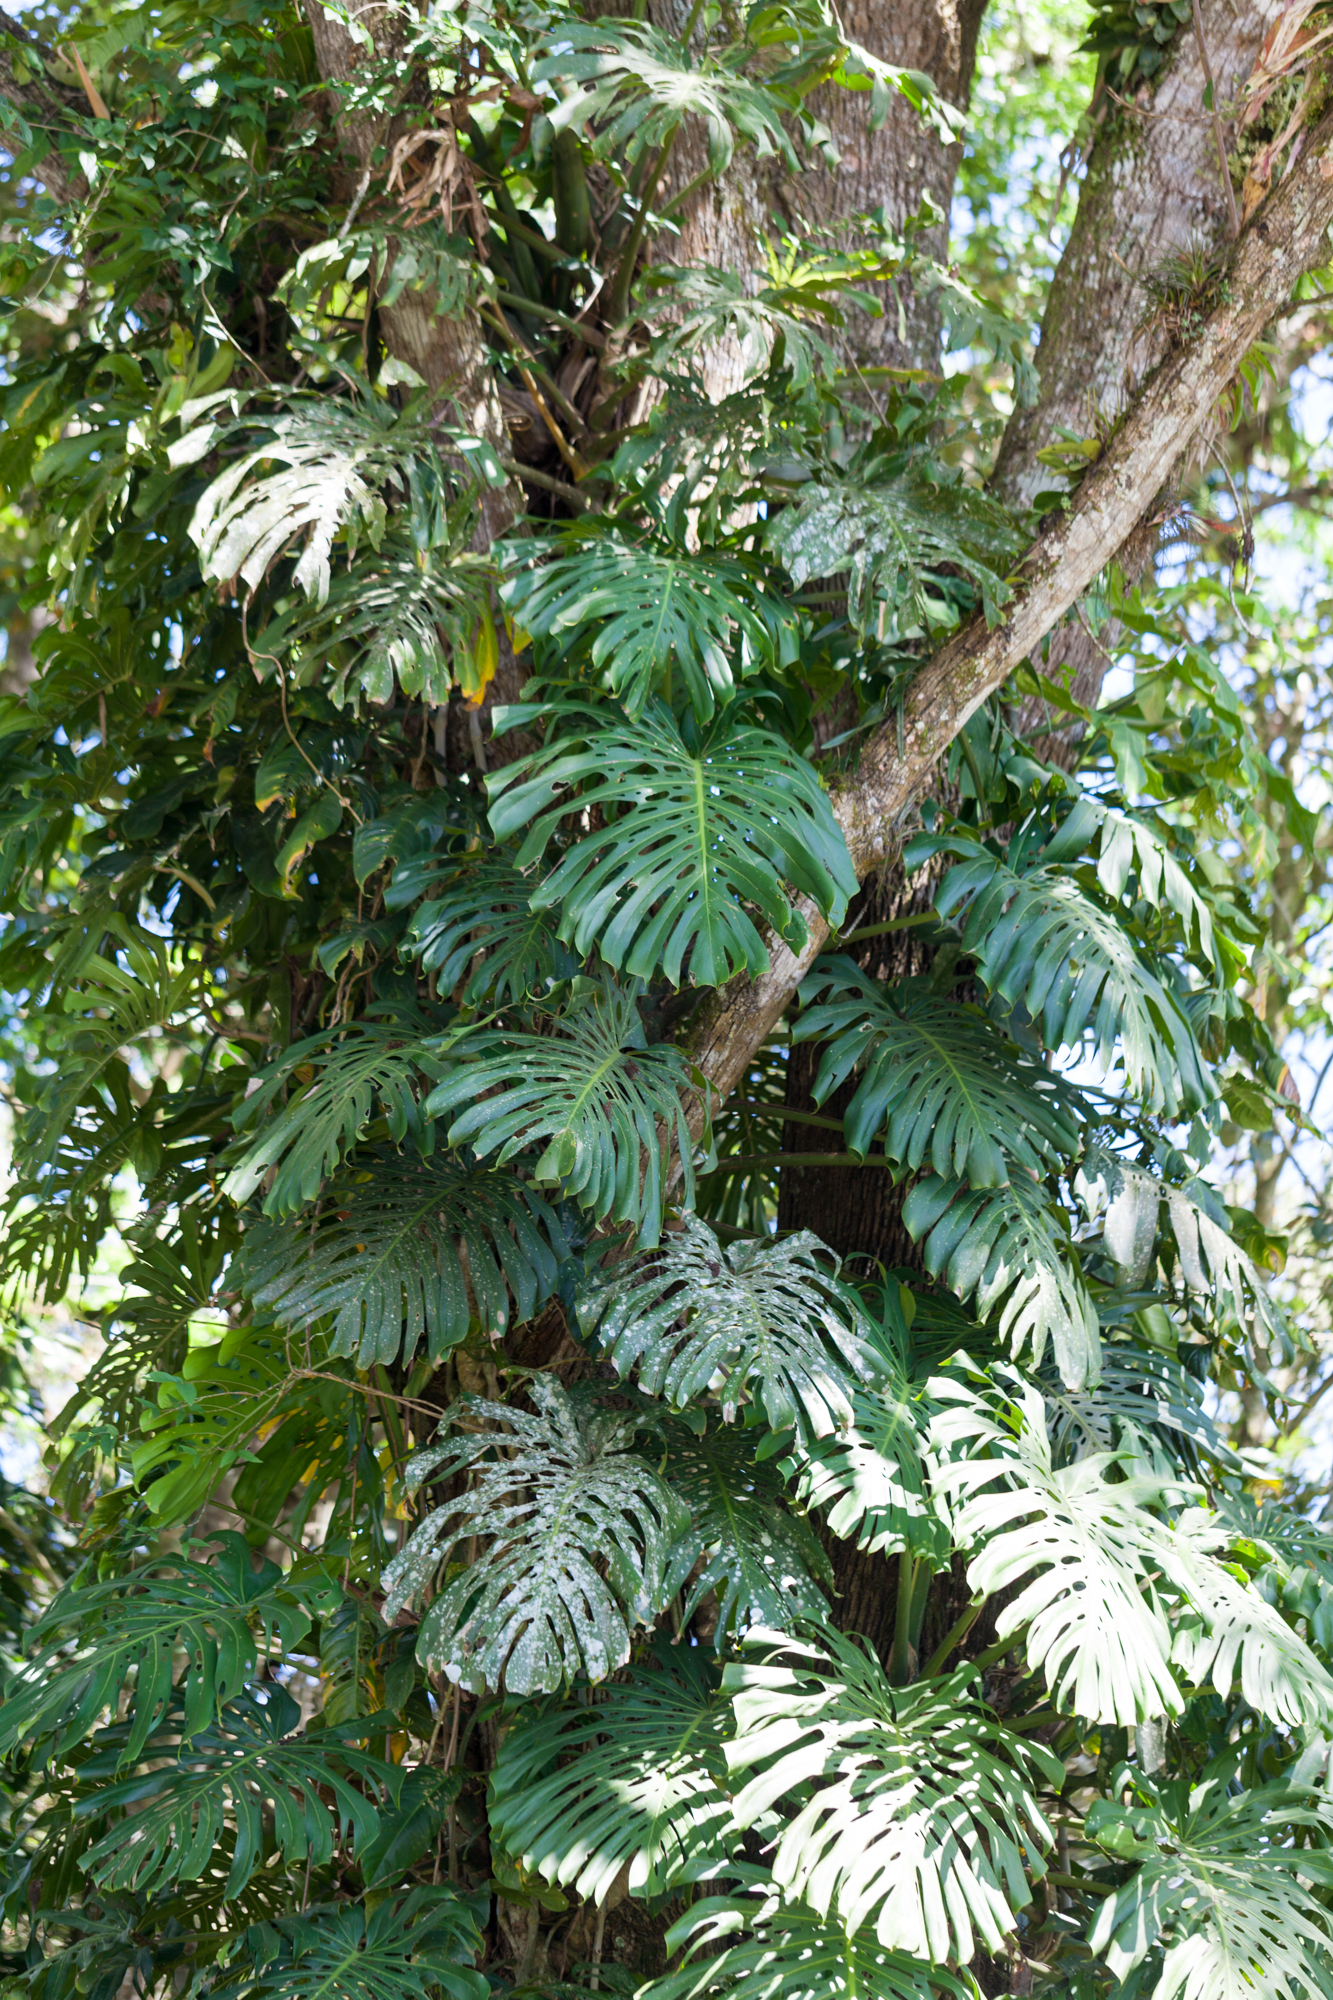 A  Monstera deliciosa  climbs high with intent at the Lankester Botanical Gardens in Costa Rica.